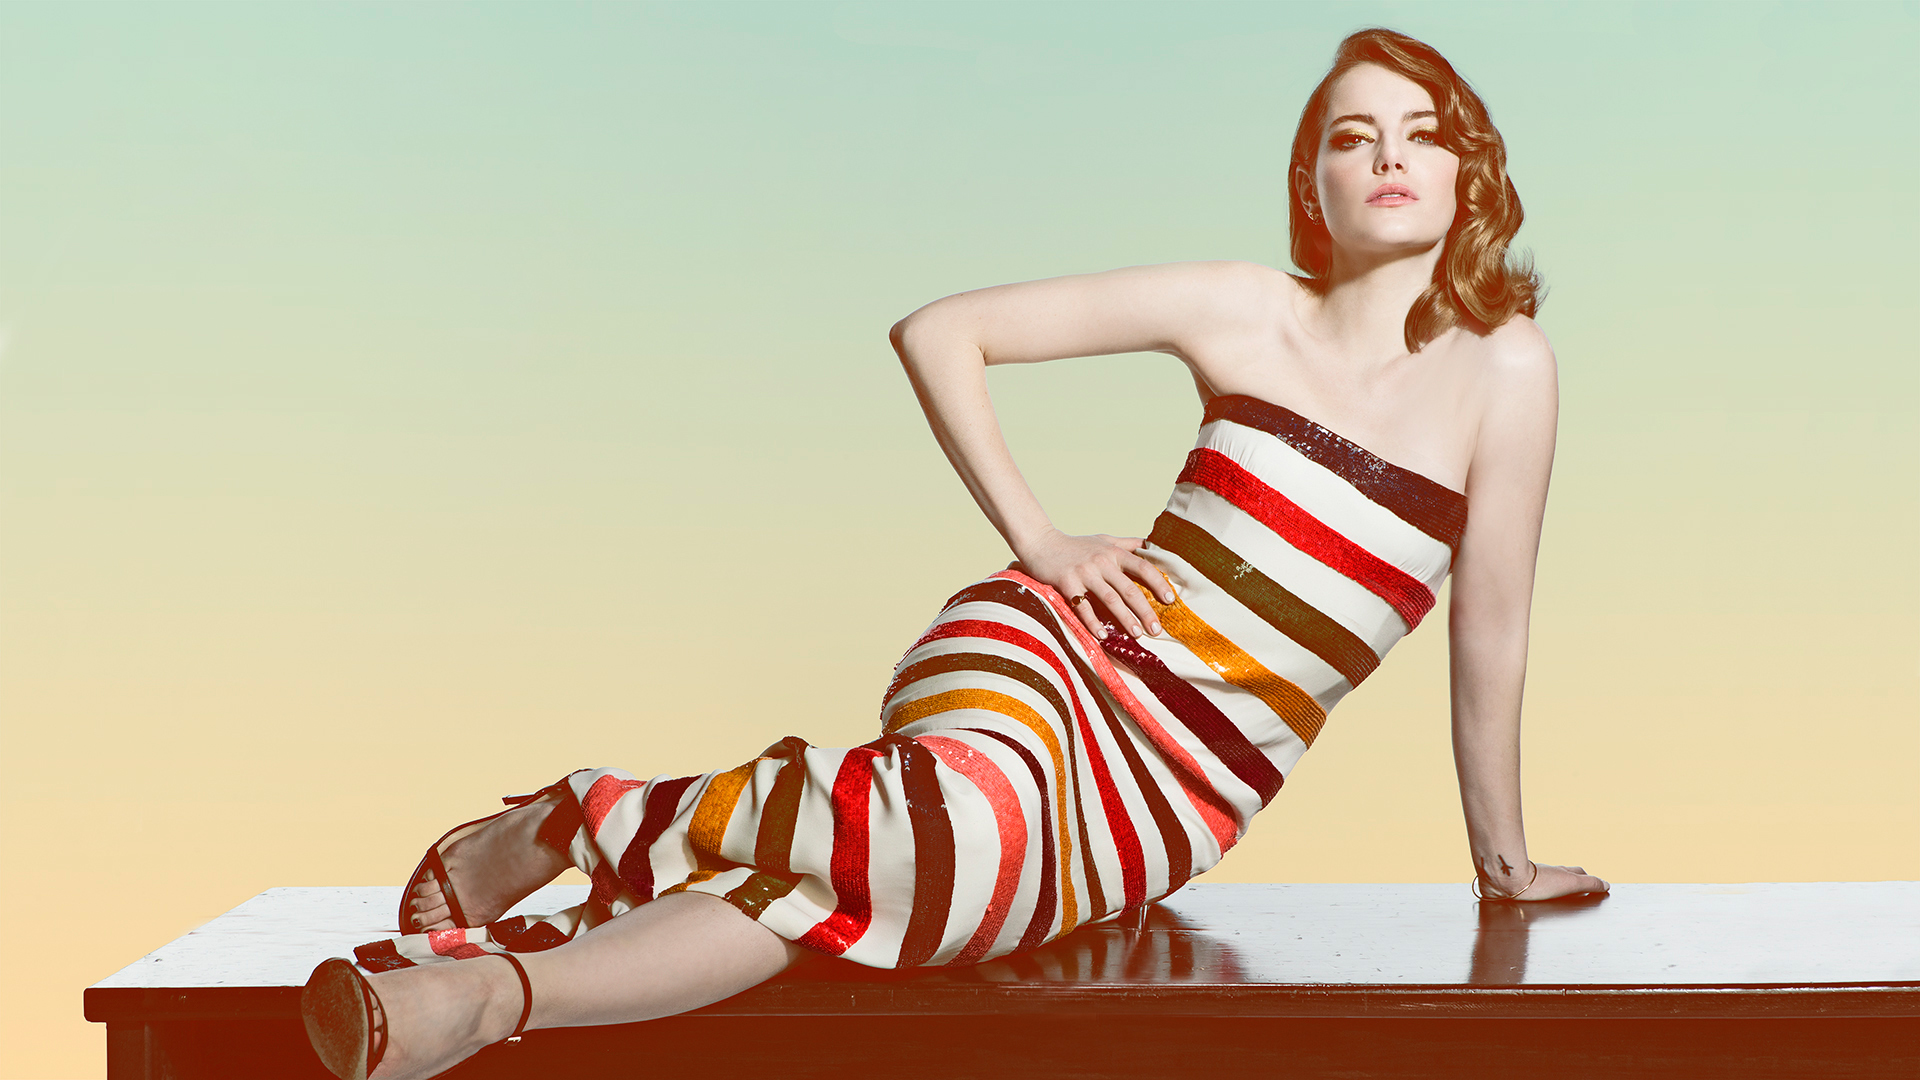 Emma Stone Hd Hd Celebrities 4k Wallpapers Images Backgrounds